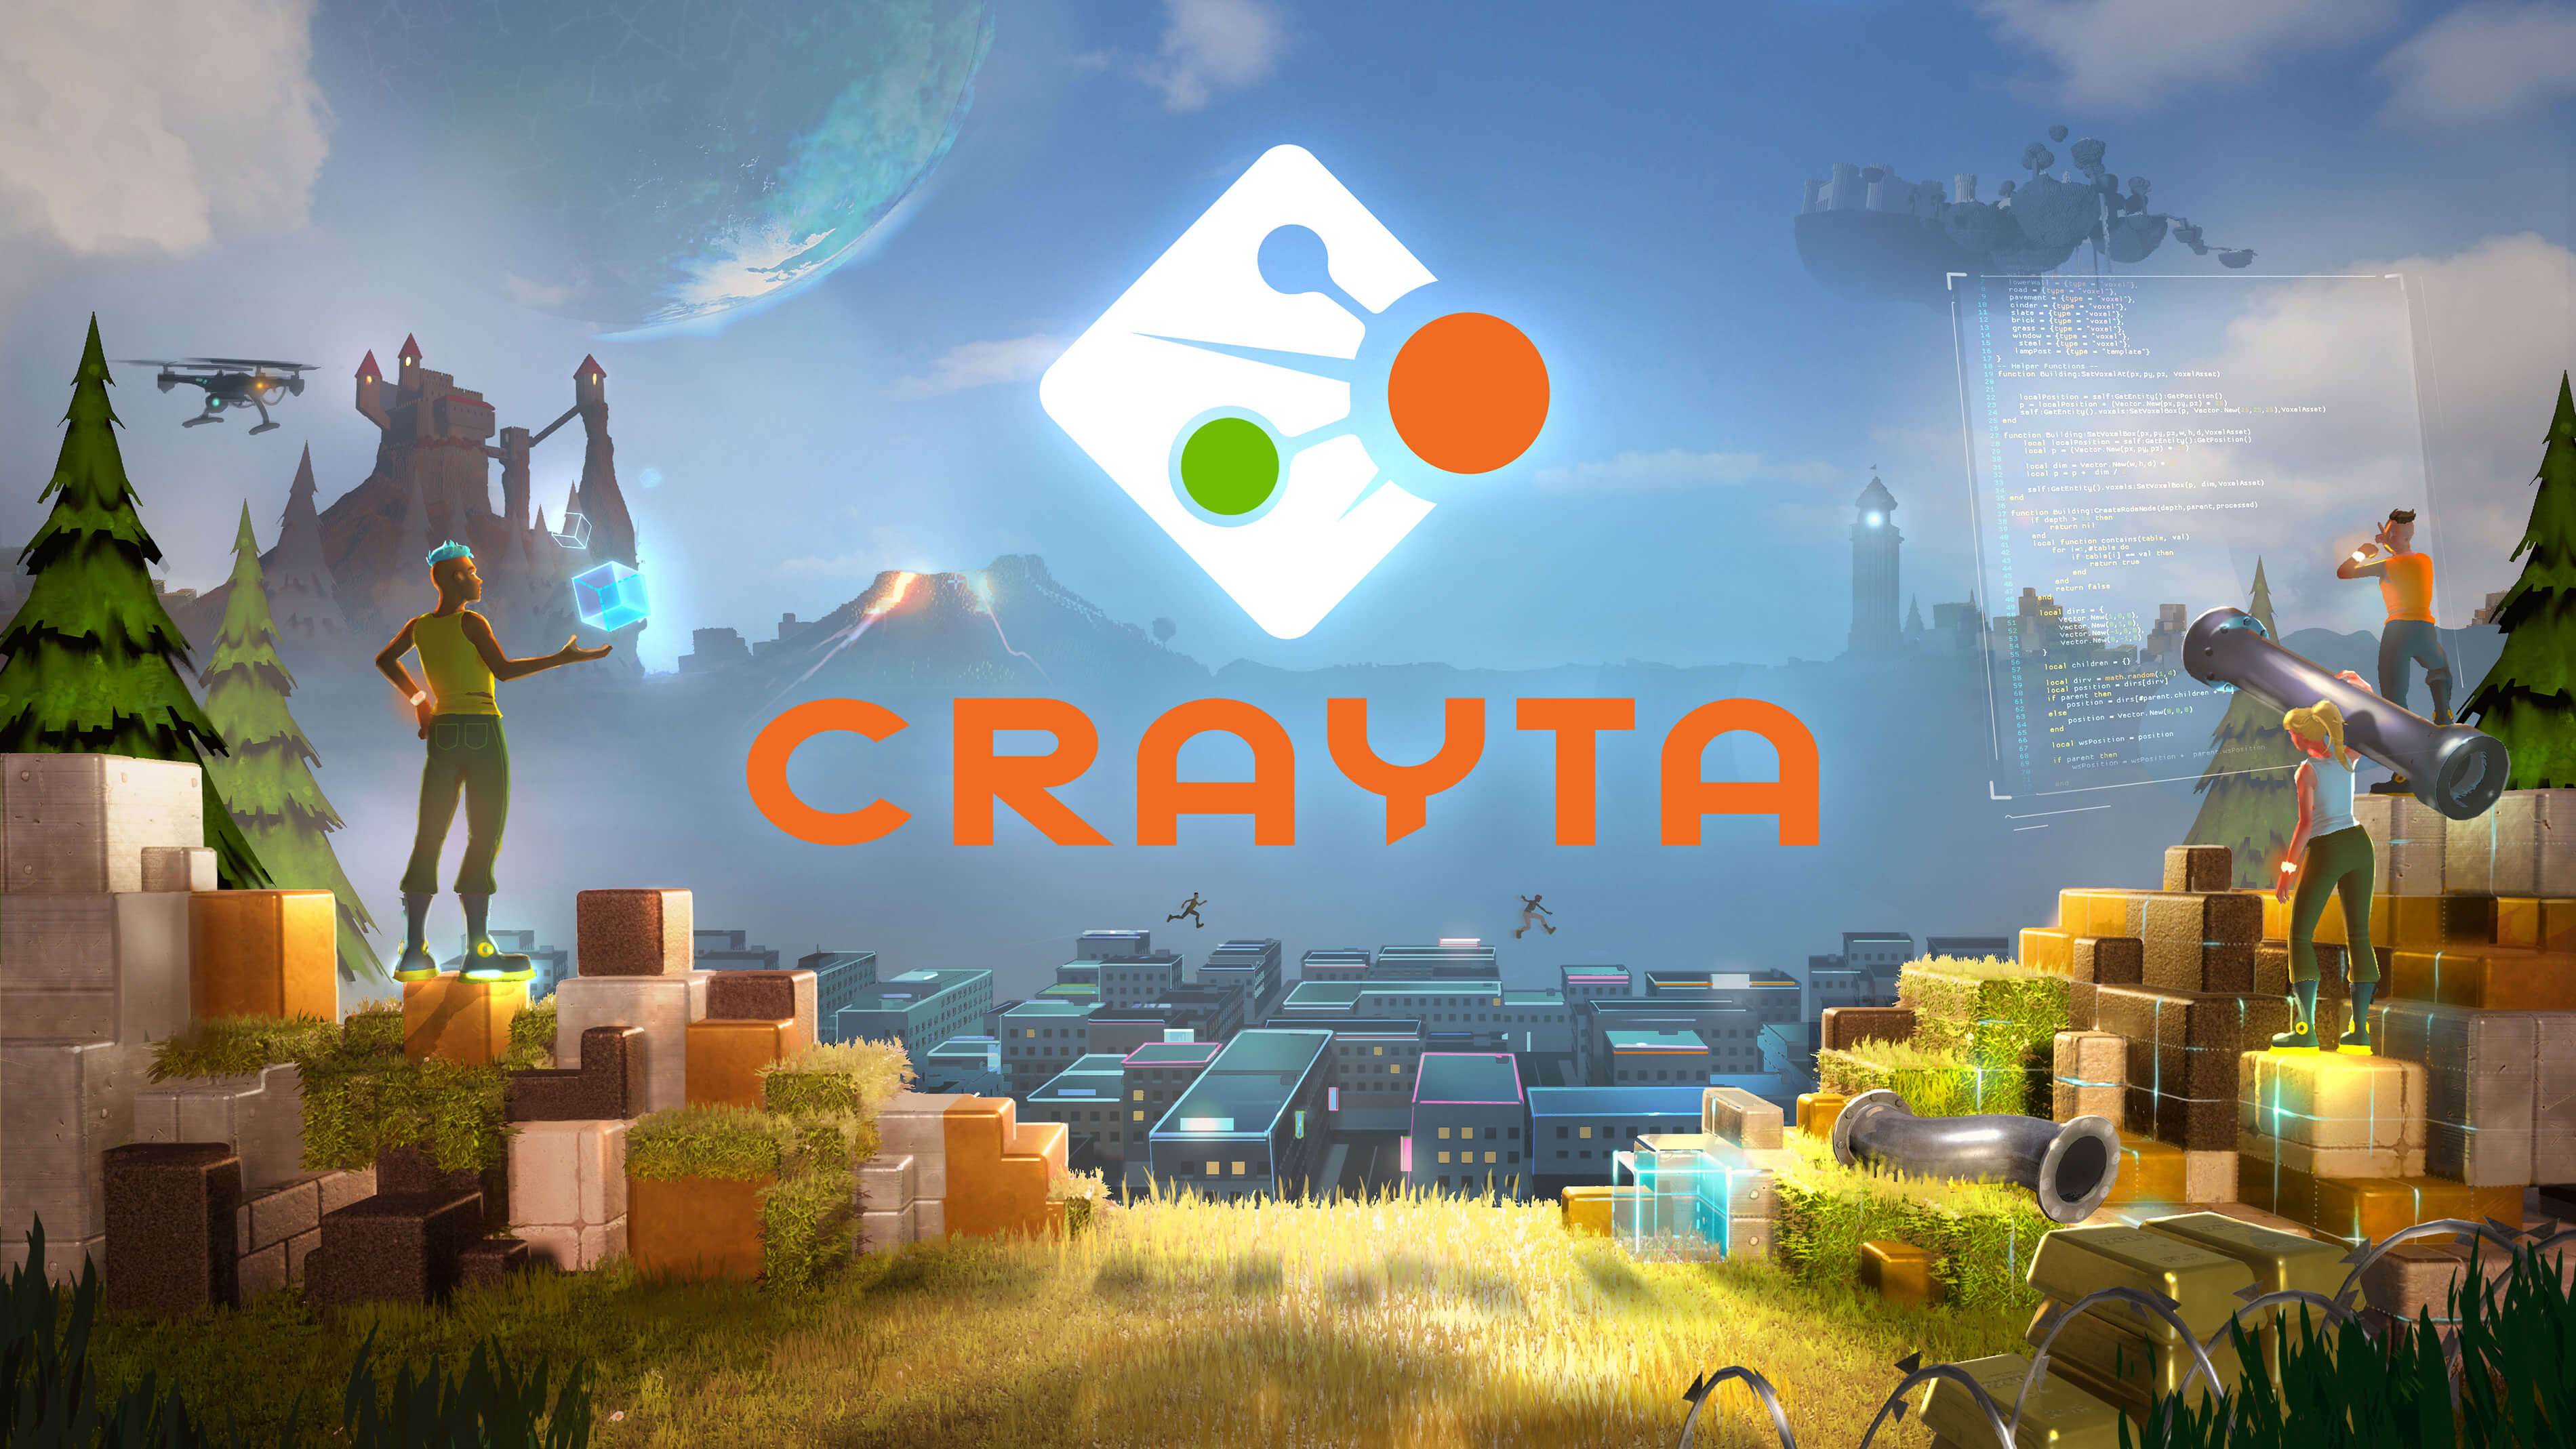 Crayta press release